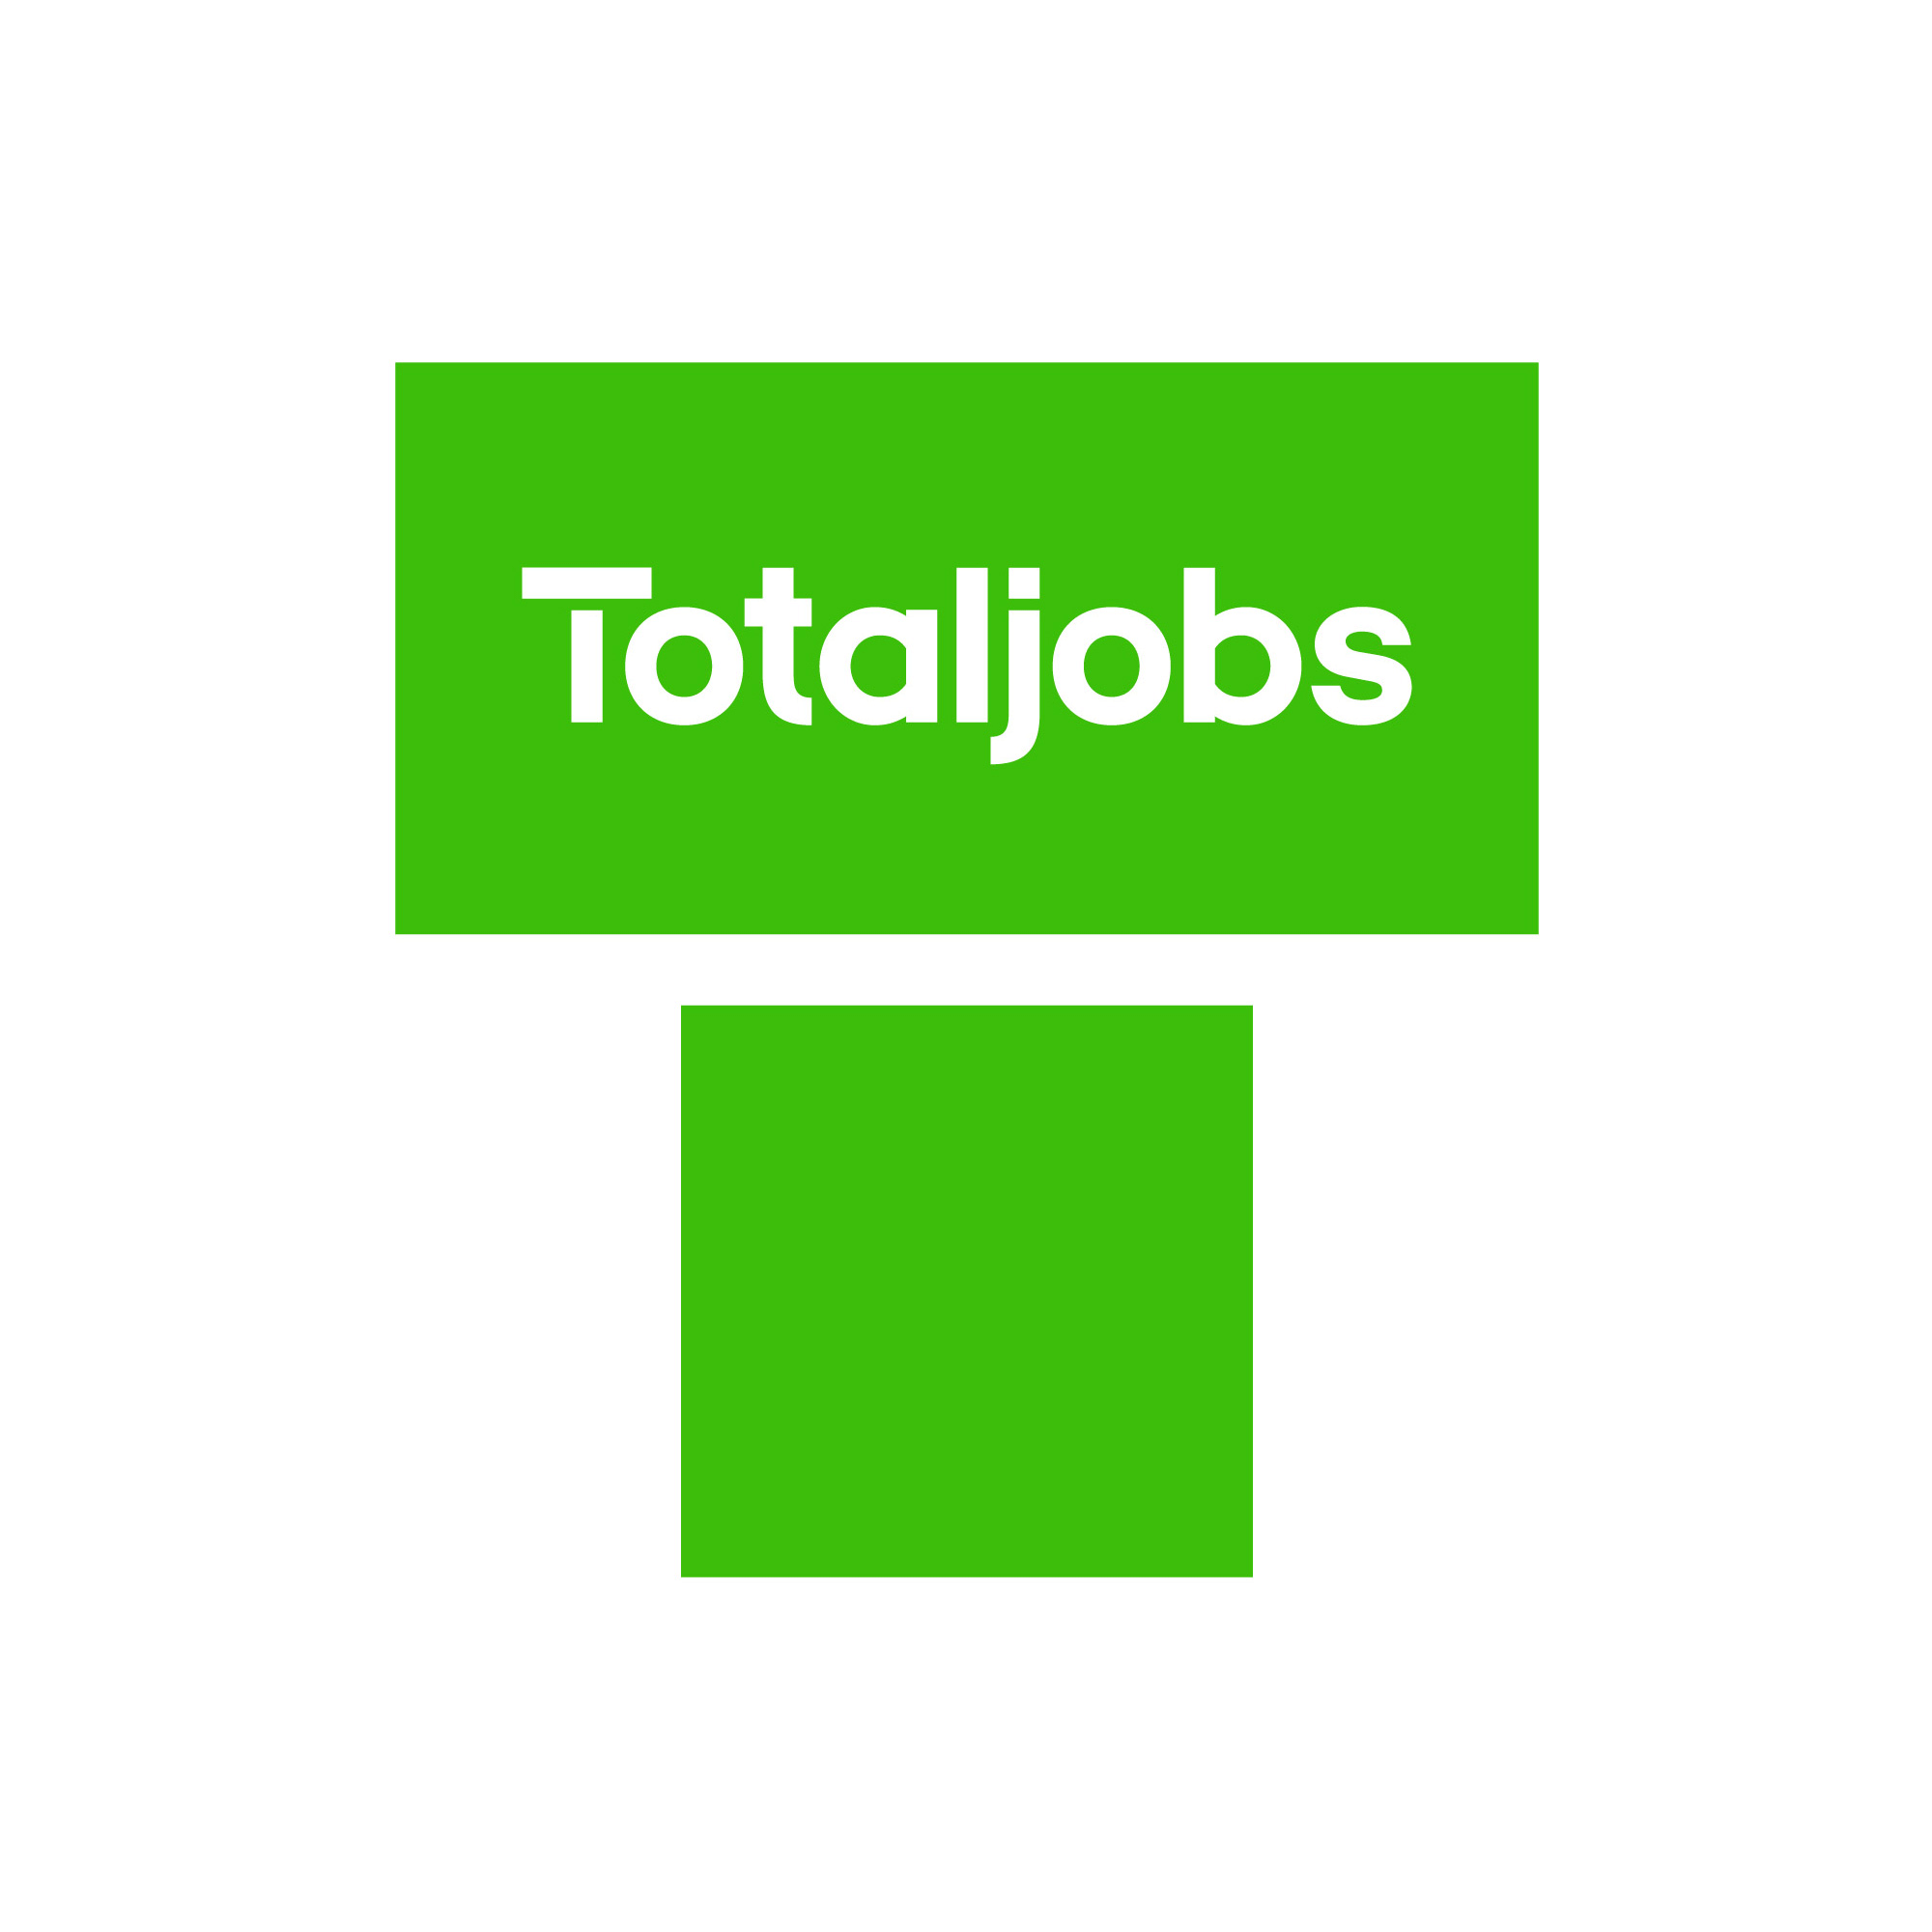 New Logo and Identity for Totaljobs by DesignStudio